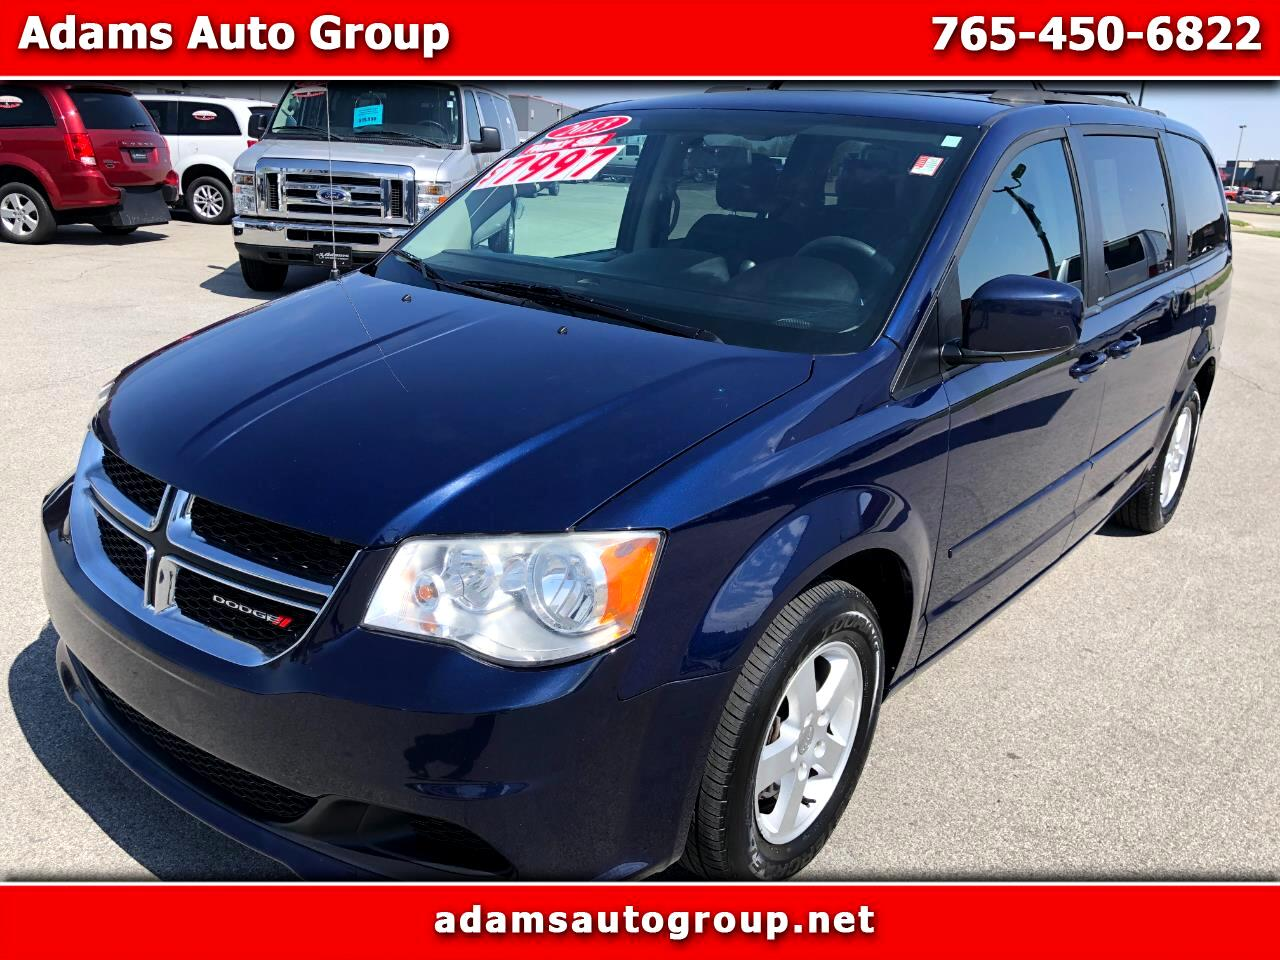 Dodge Grand Caravan 4dr Wgn SXT 2013